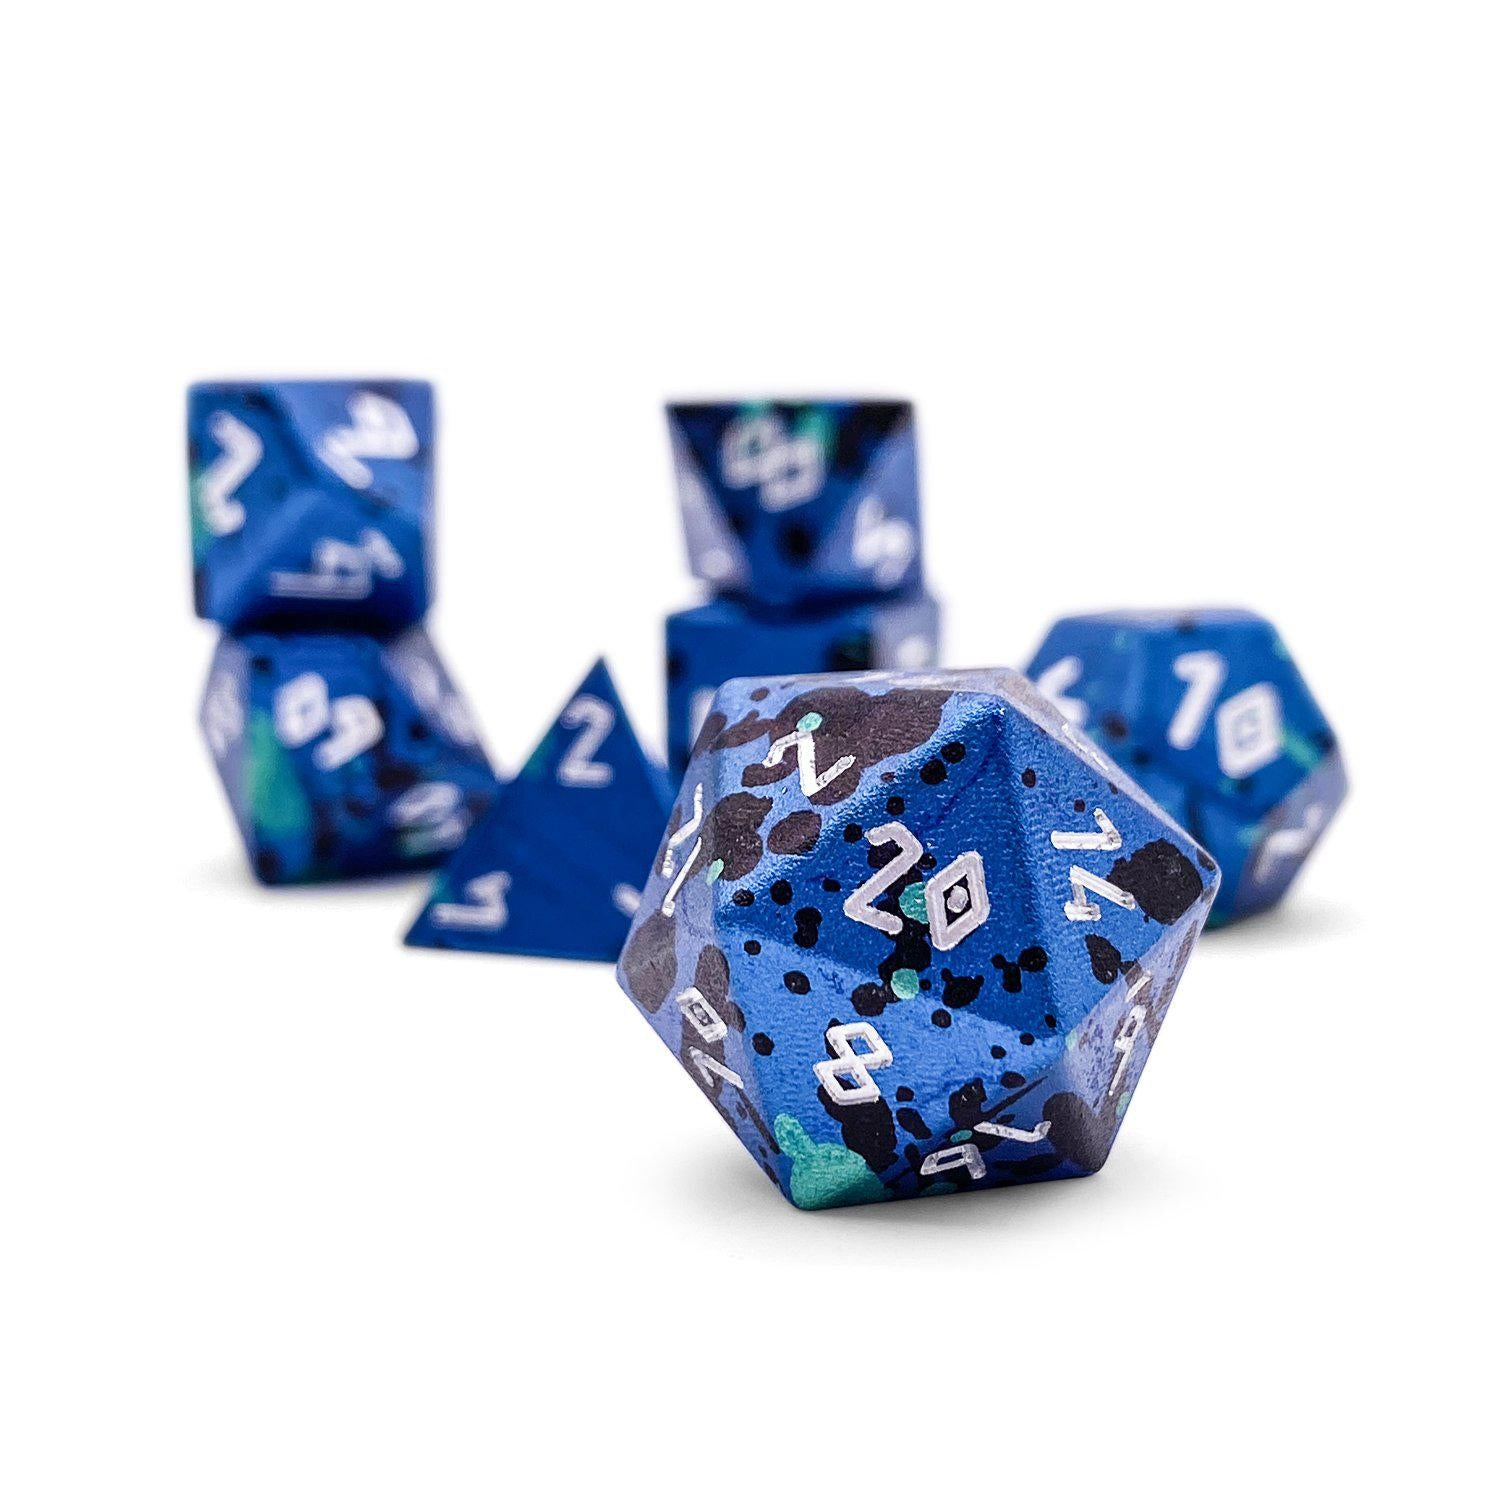 The Mystery Die TM - Wondrous Dice Set of 7 RPG Dice by Norse Foundry Precision Polyhedral Dice Set